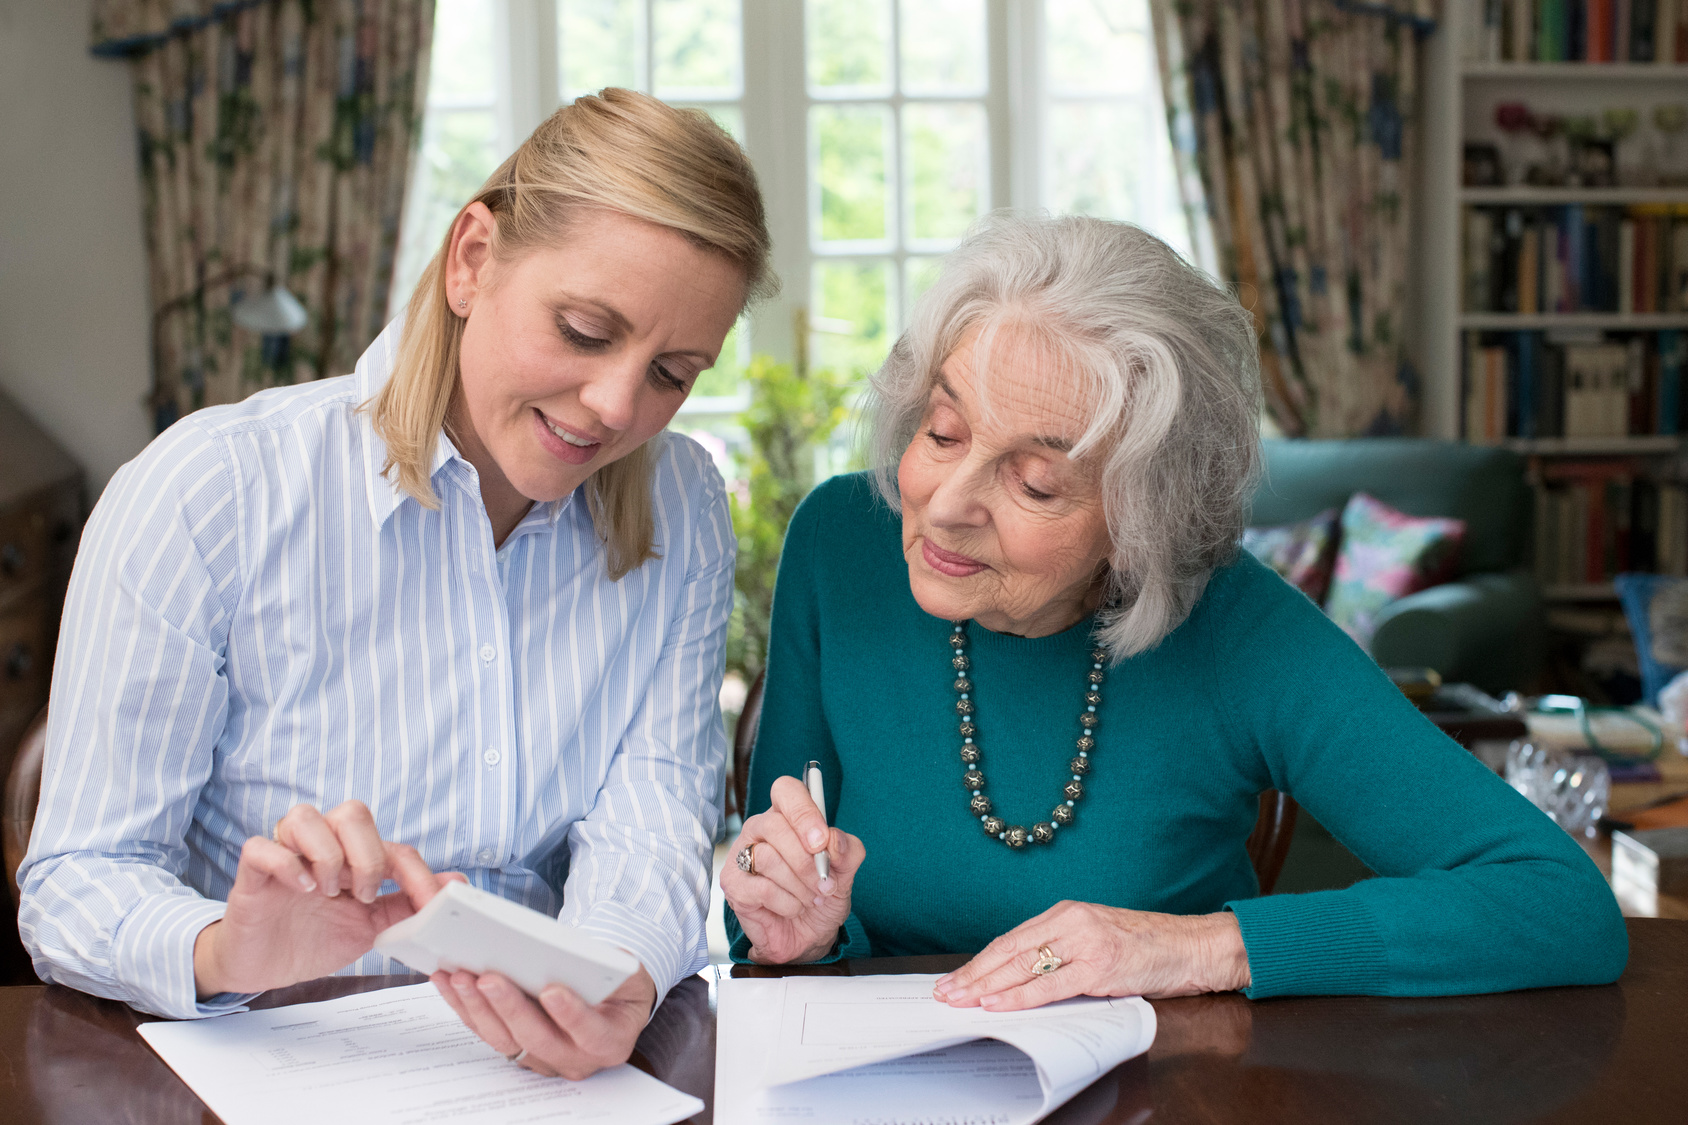 Caregiver-Elderly-Woman-Reviewing-Documents